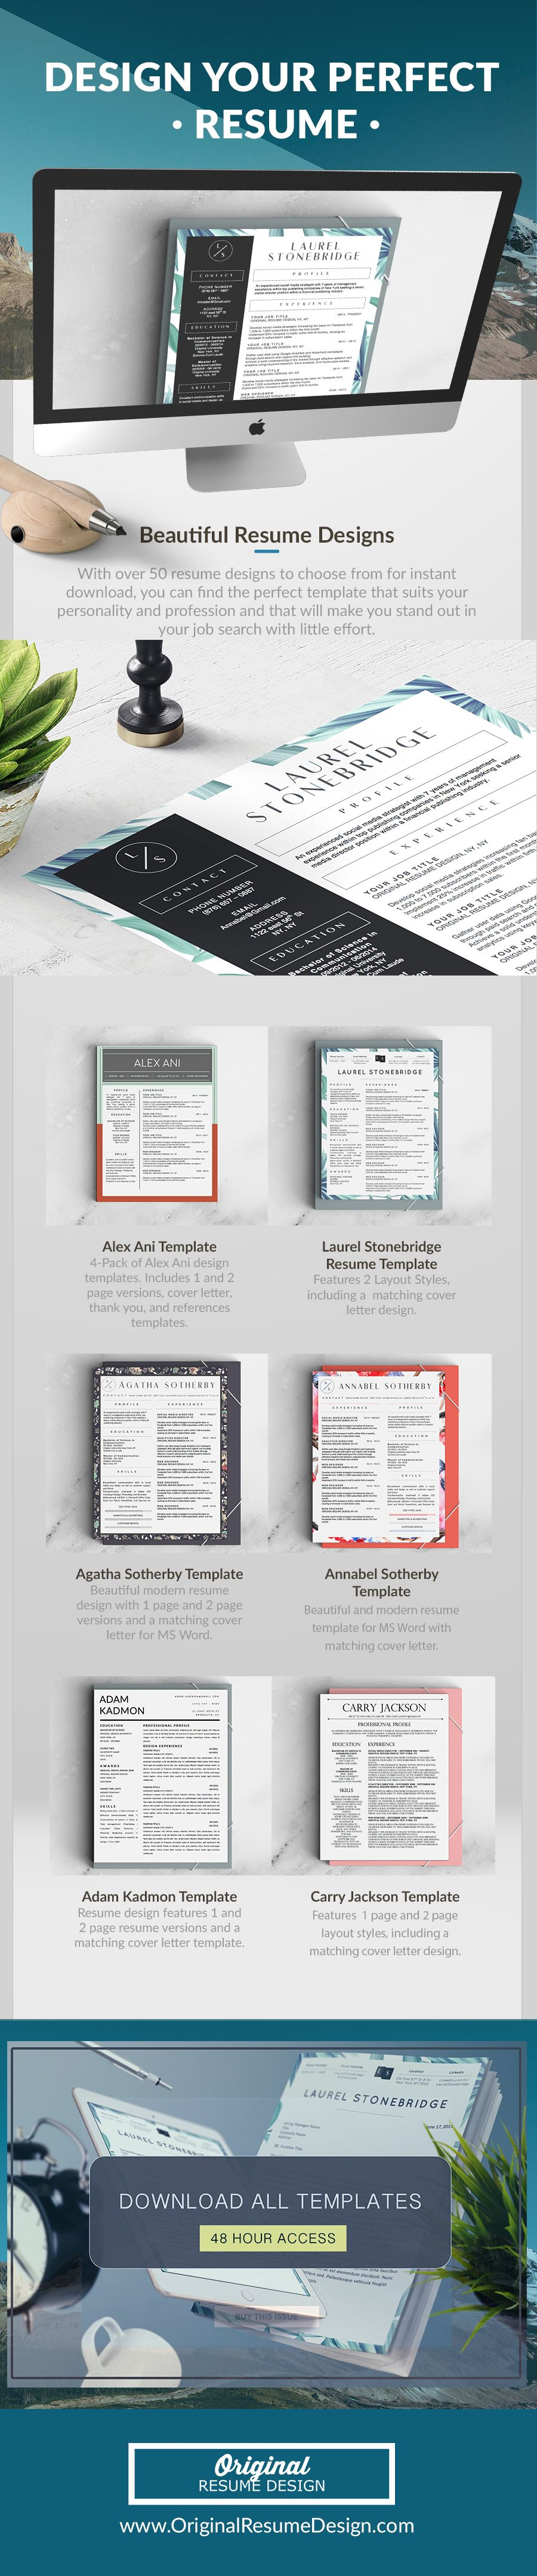 beautiful resume designs to help you stand out in your job